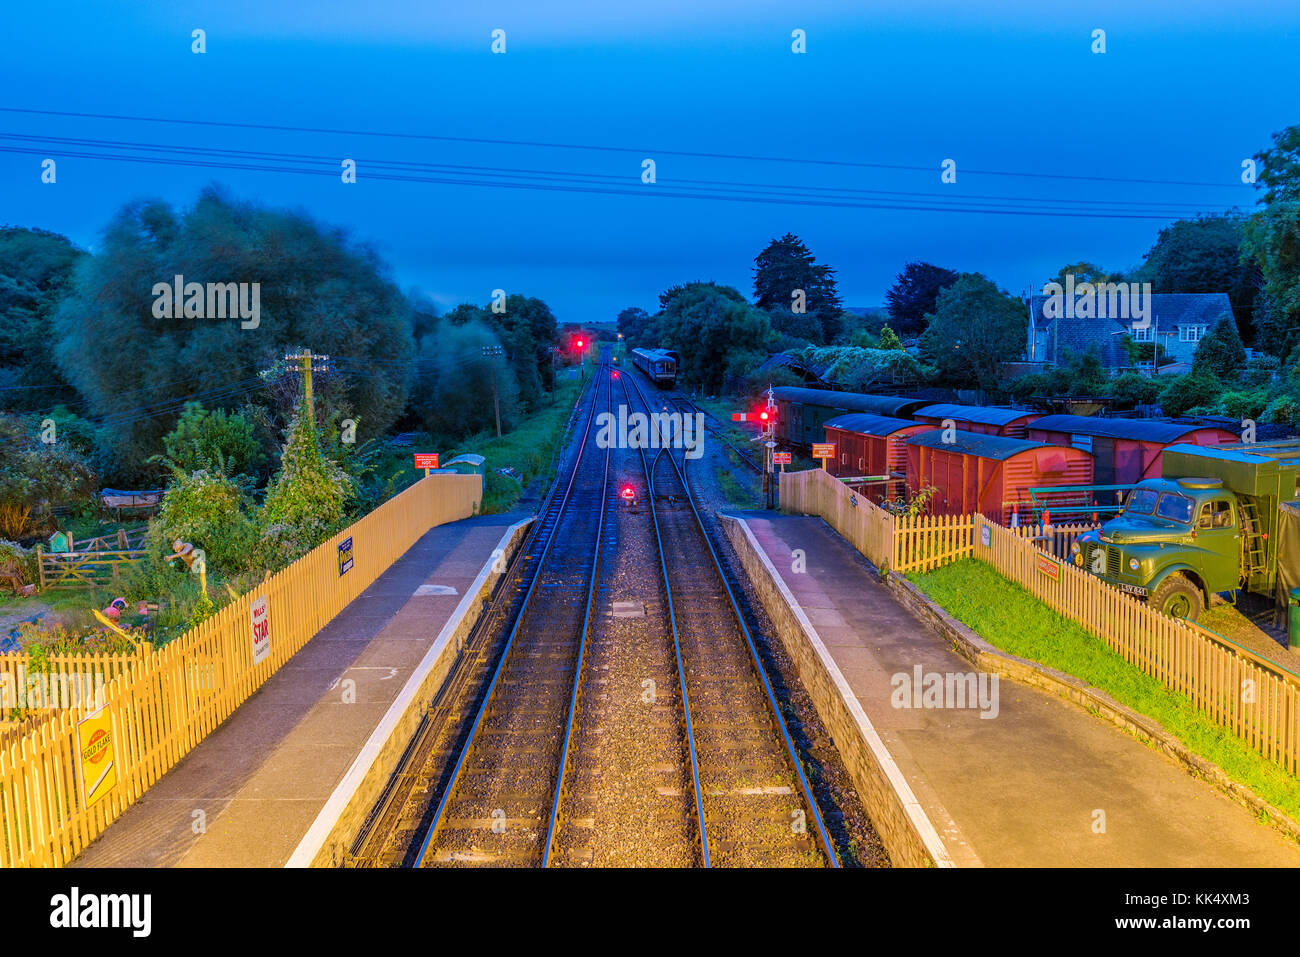 CORFE, UNITED KINGDOM - SEPTEMBER 08: Train tracks and train yard at night in Corfe Castle railway station on September - Stock Image